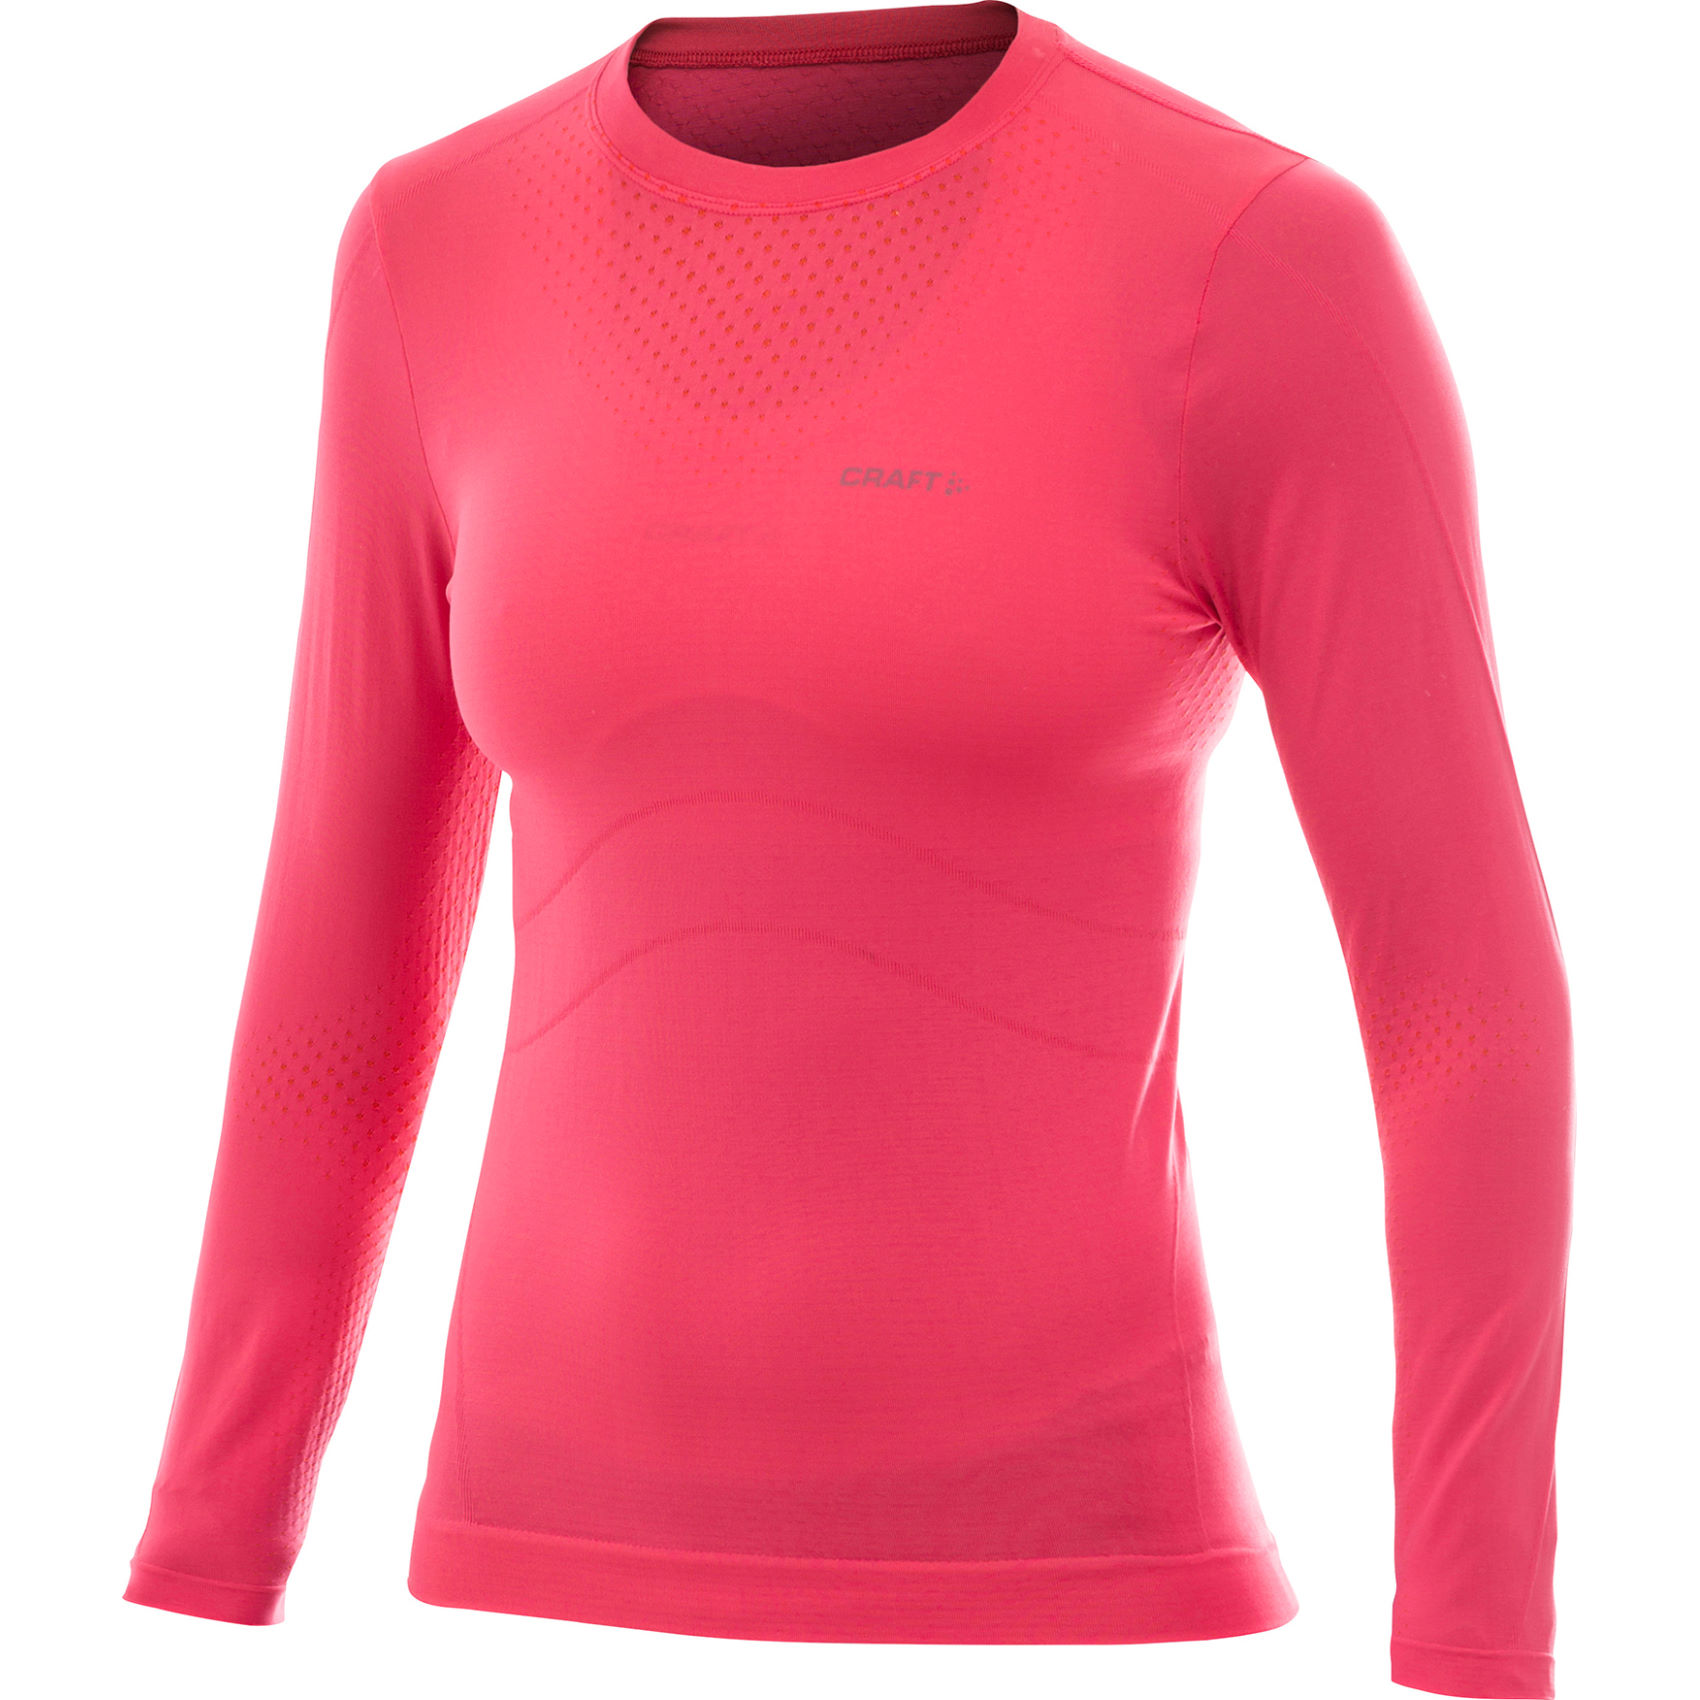 Although I am fairly new to base layer use during the summer months, I have to say that the other raving reviews are right on. This stuff is amazing. Does a great job at keeping you cool in hot weather and slightly insulated on cooler morning runs.5/5(25).